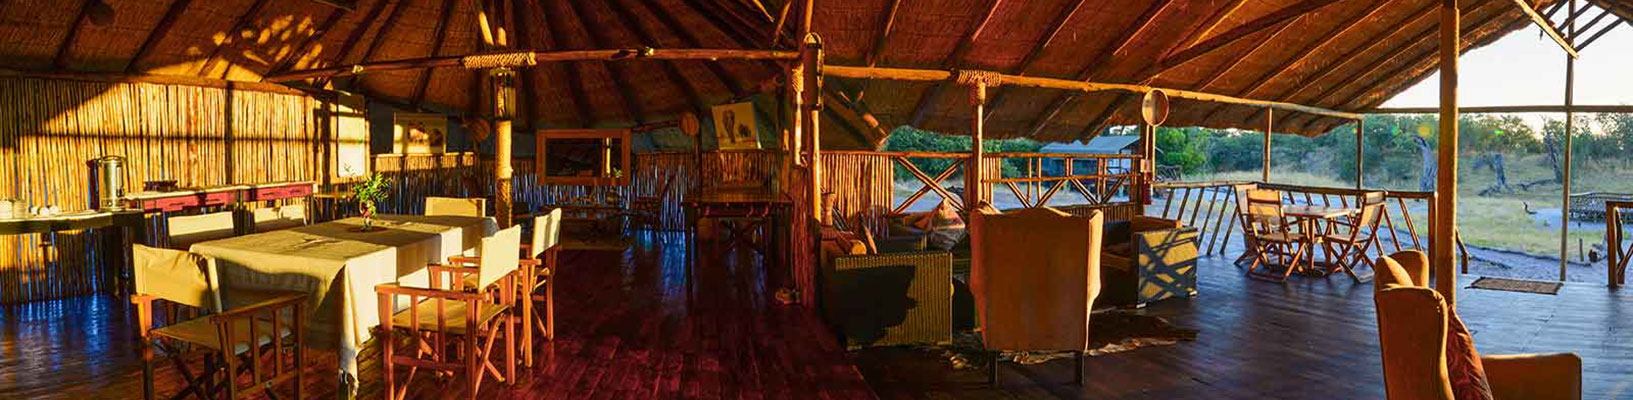 Camp-Savuti-lodge-lounge-dining-pano2.jpg